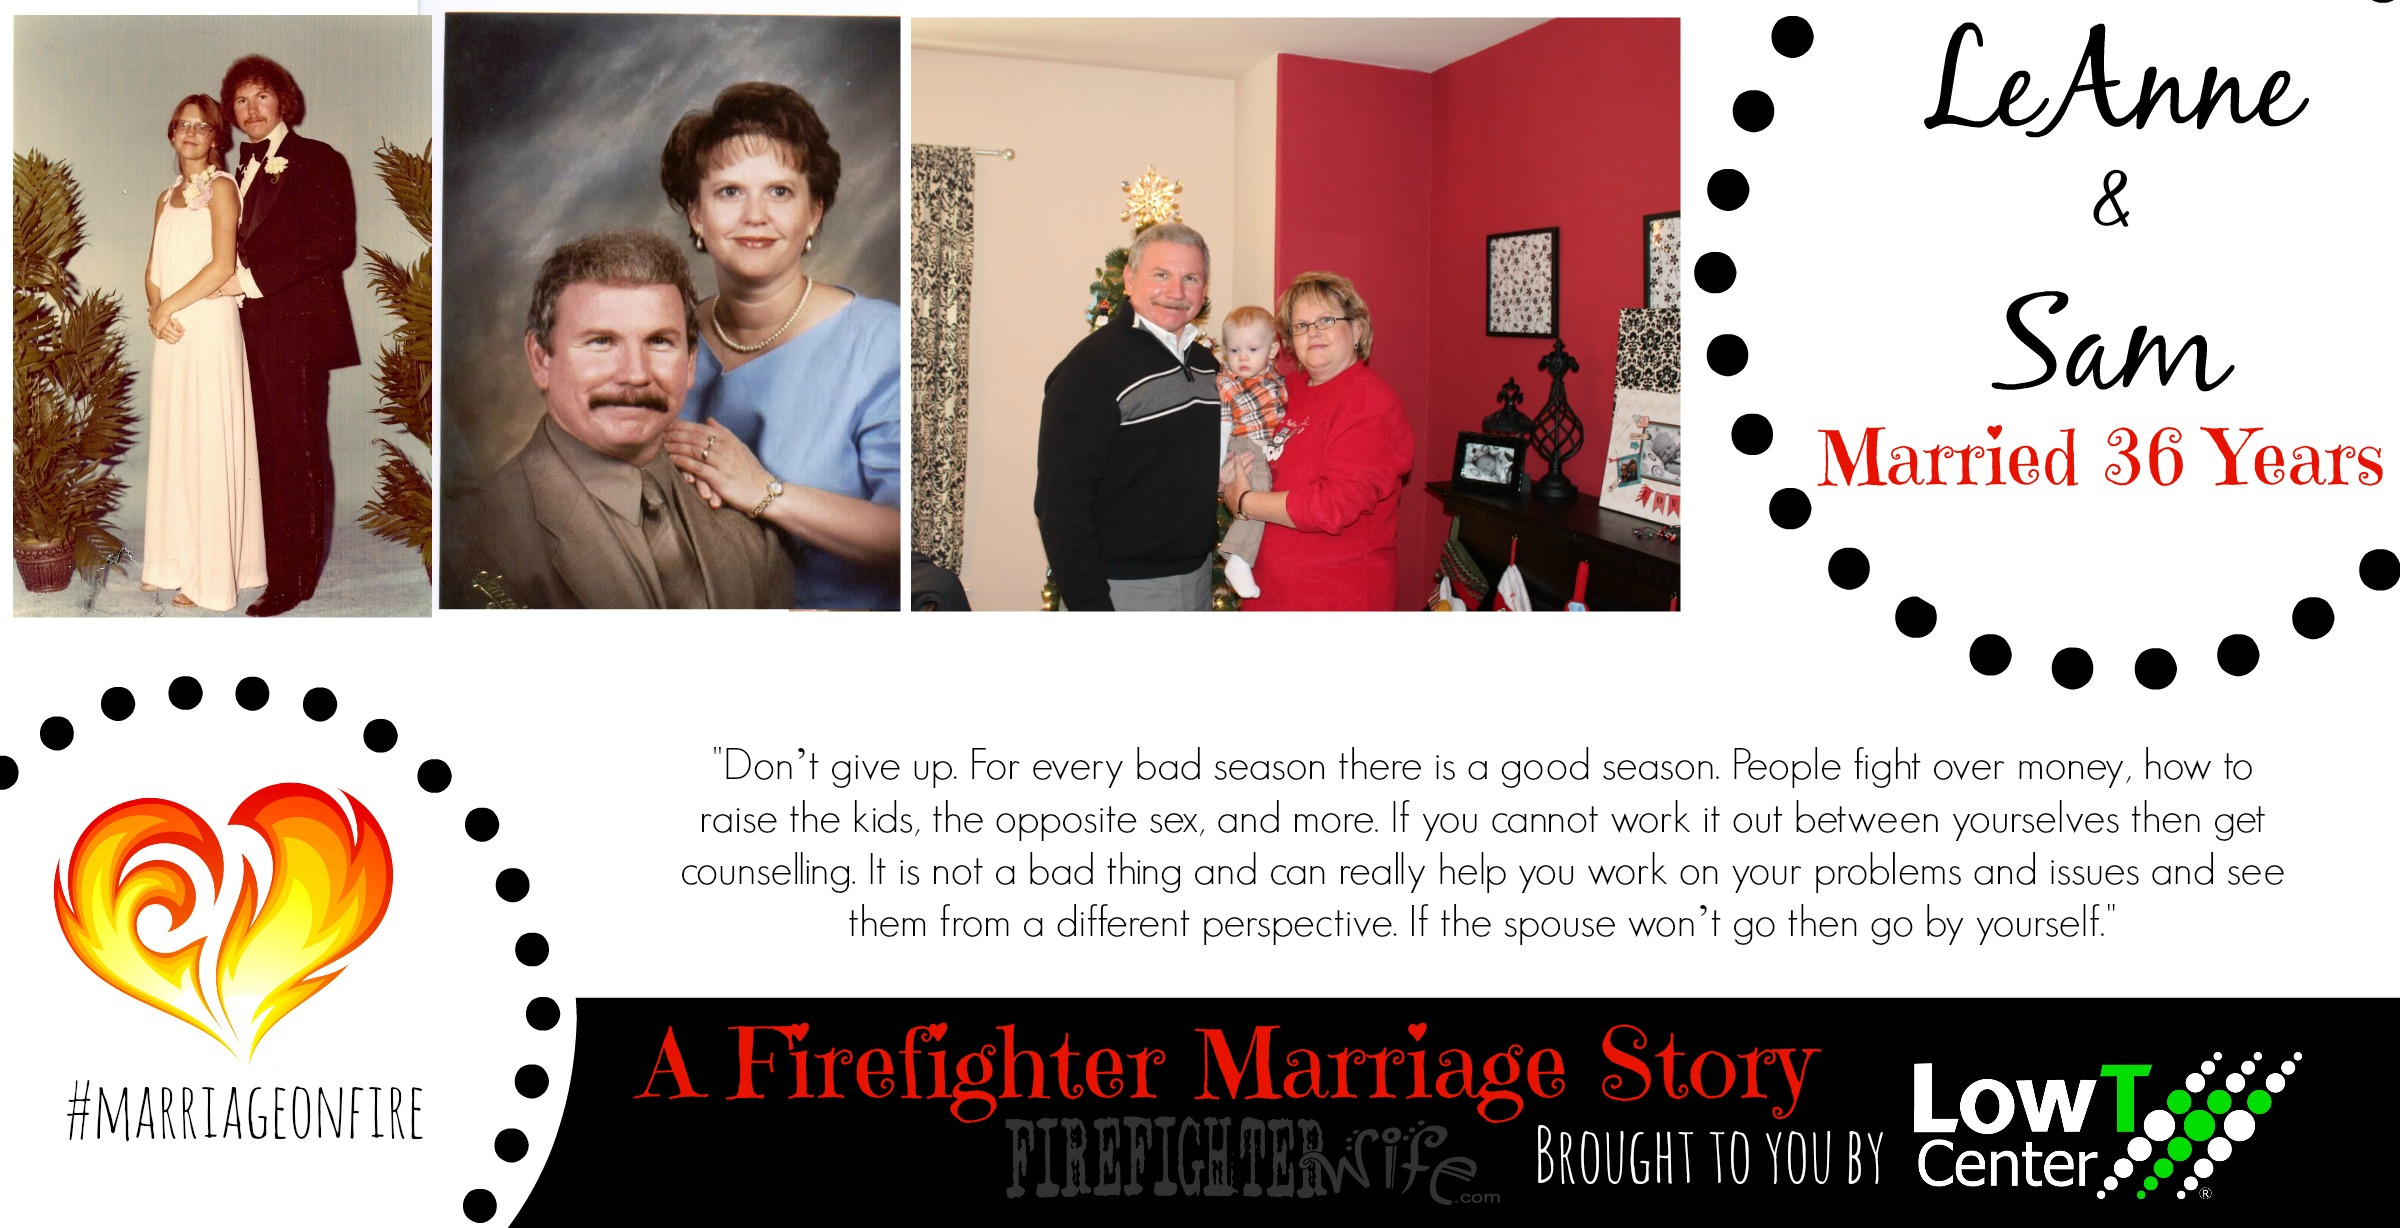 A Firefighter Marriage Story – Secrets to 36 Years